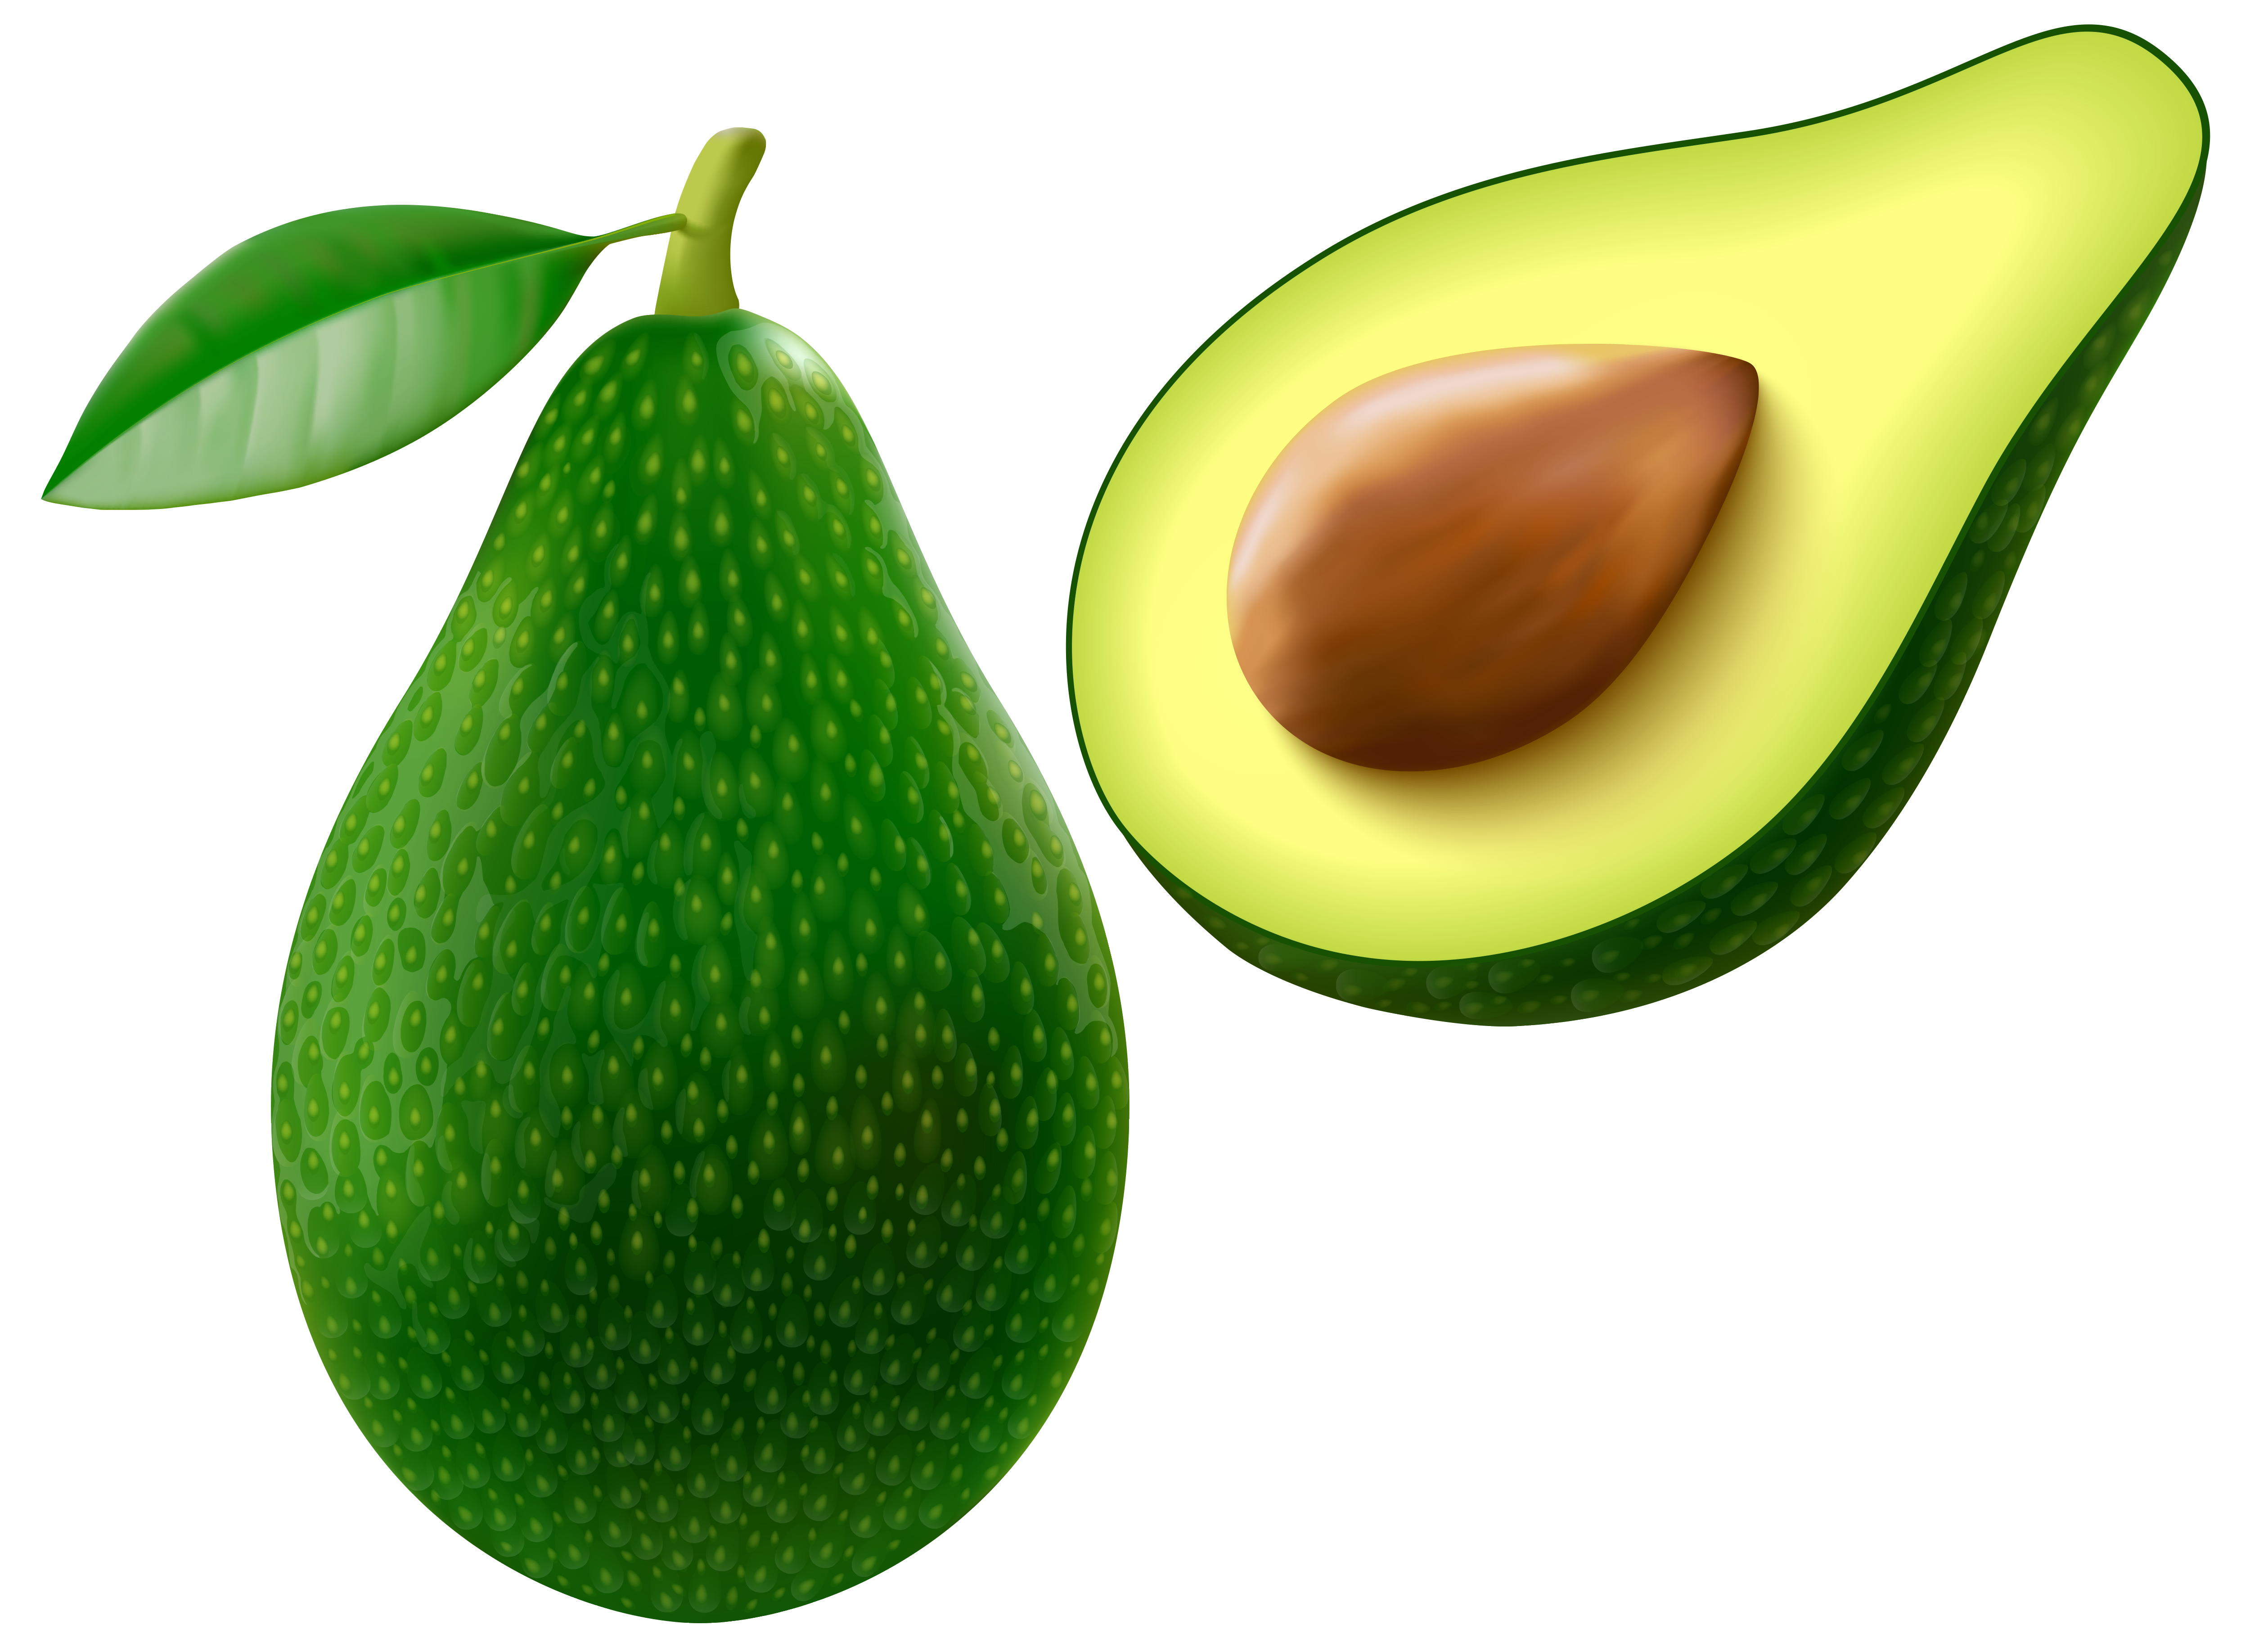 Free clipart images avacado image royalty free library Avocado PNG Vector Clipart Image | Gallery Yopriceville - High ... image royalty free library